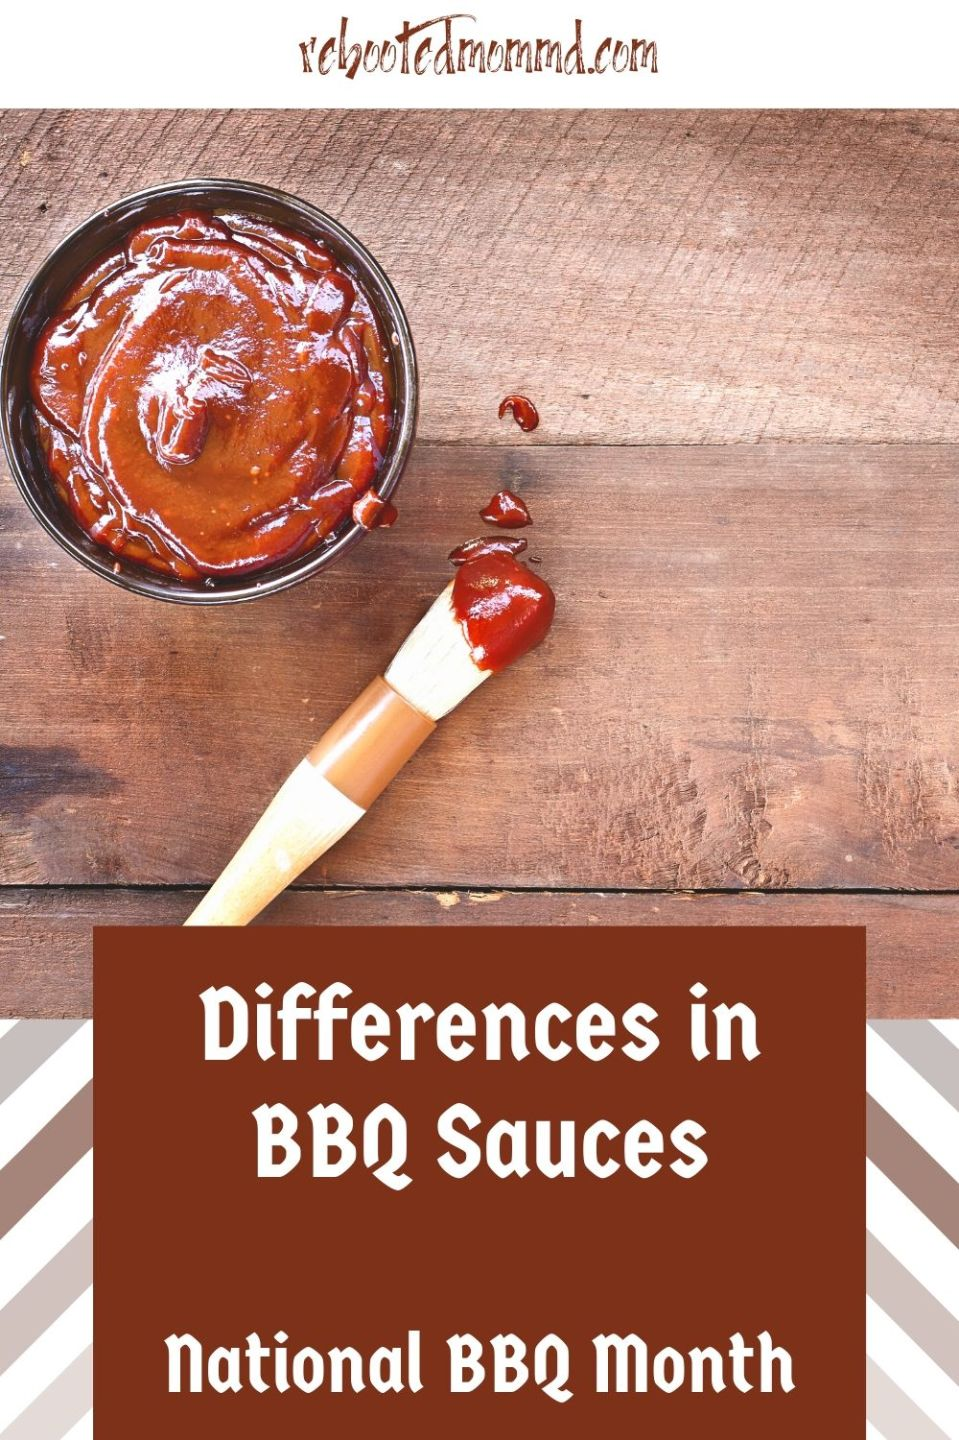 The Difference in Barbecue Sauces